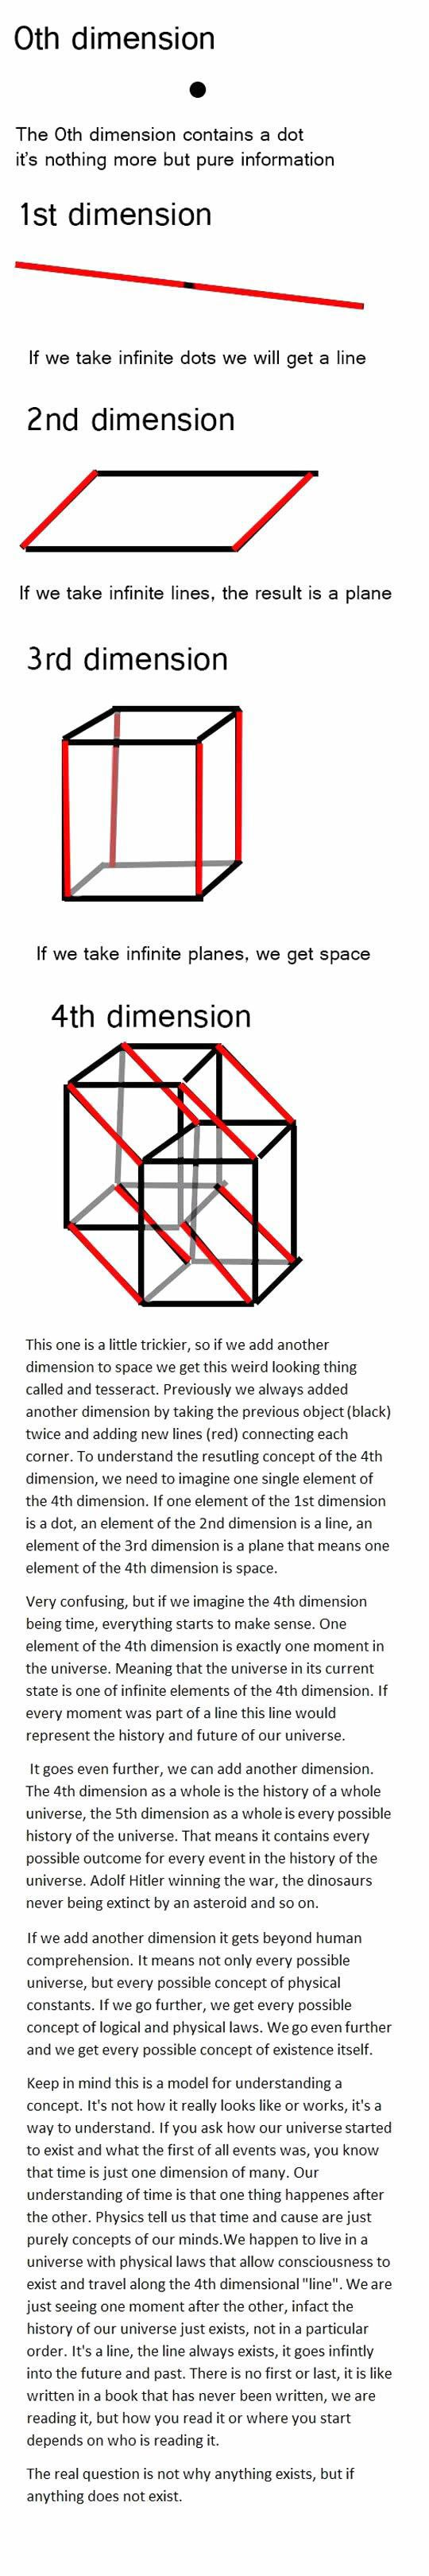 The Thing About Dimensions - This is very philosophical but i think I've understood how the 4th dimension works in a mathematical sence